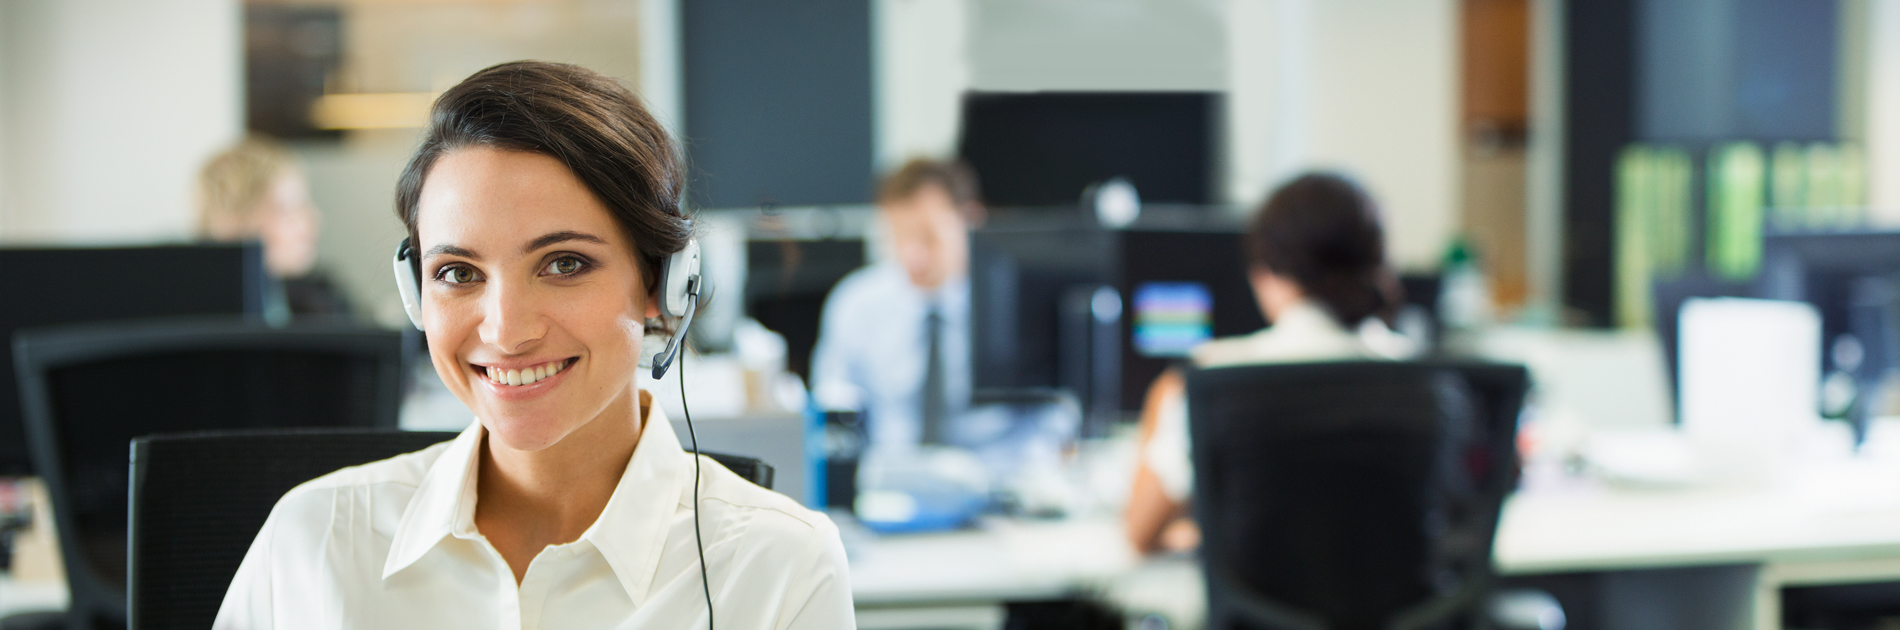 Female customer support representative smiling with a headset on with a blurred background office environment